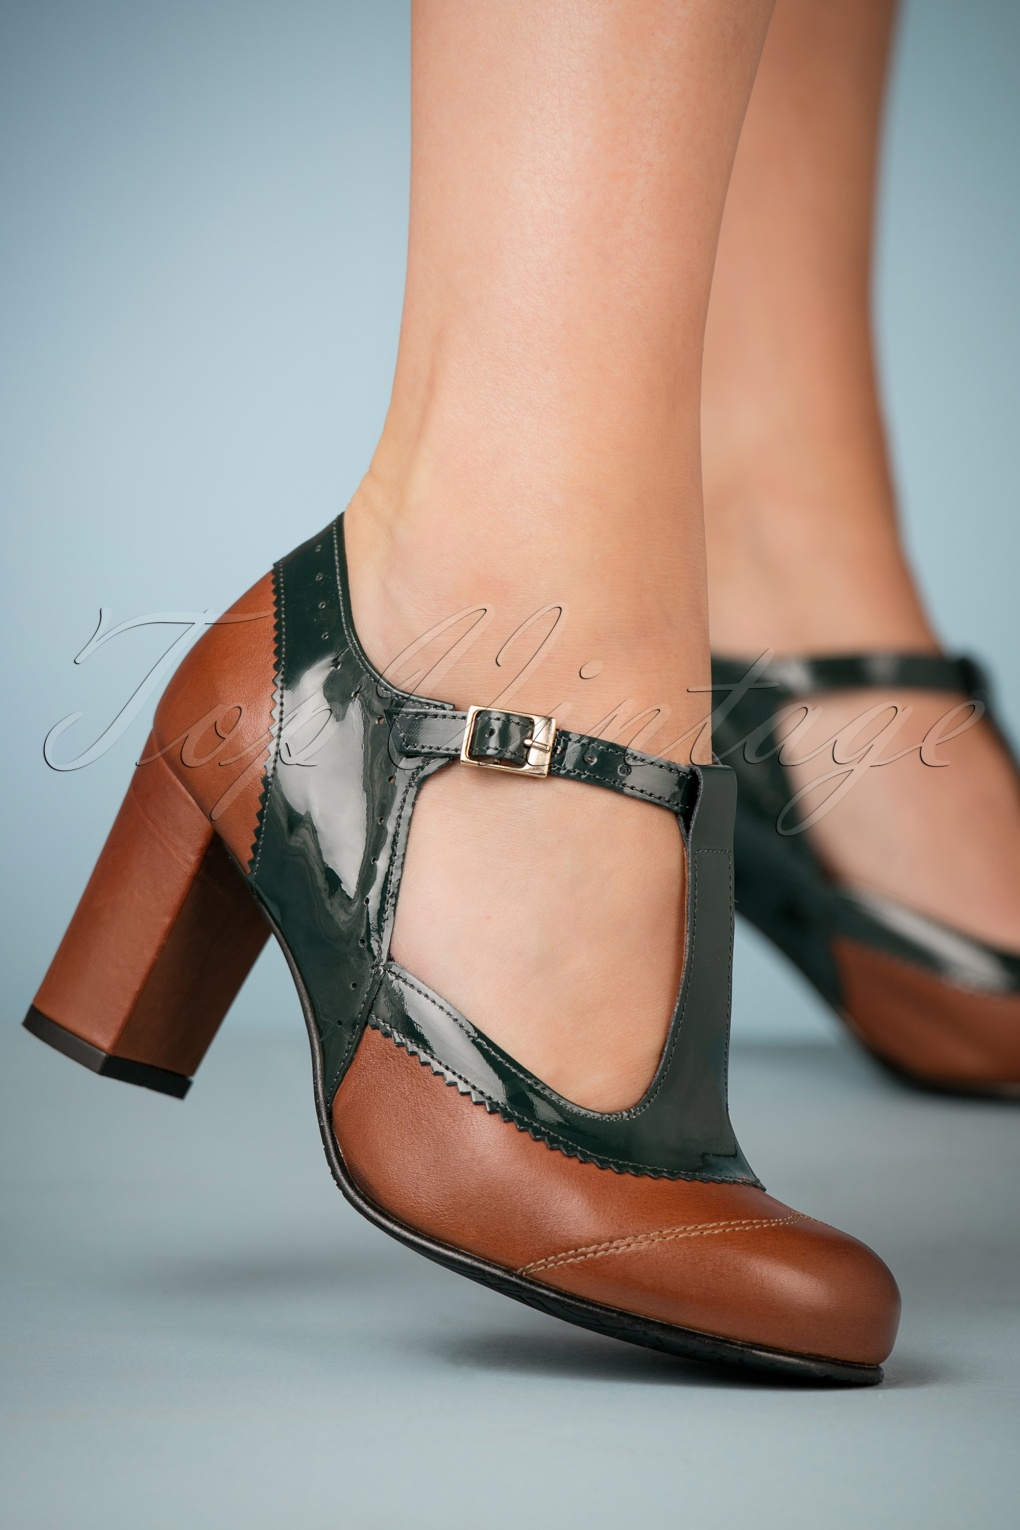 60s Shoes, Boots | 70s Shoes, Platforms, Boots 60s Ada Leather T-Strap Pumps in Green and Brown £132.85 AT vintagedancer.com